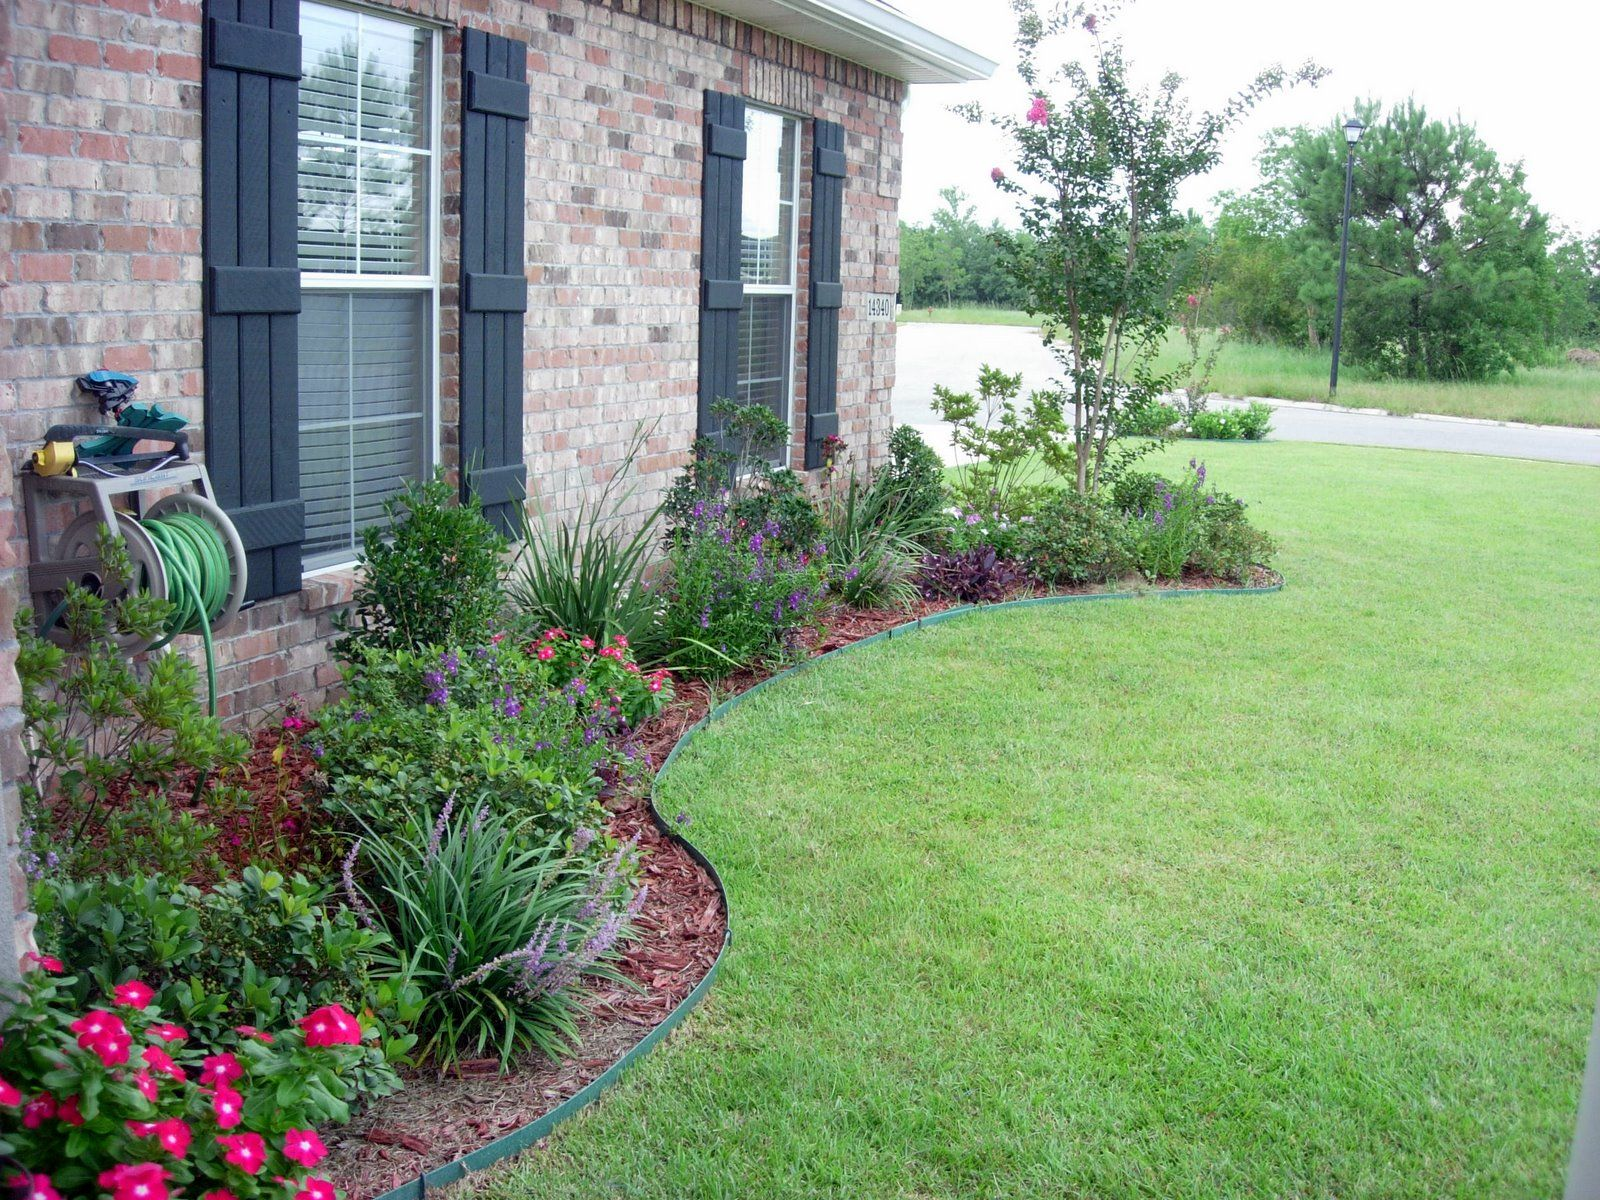 Flower Bed Designs For Front Of House Use Shrubs Small Trees To Form The Skeletal Struct Ure Your